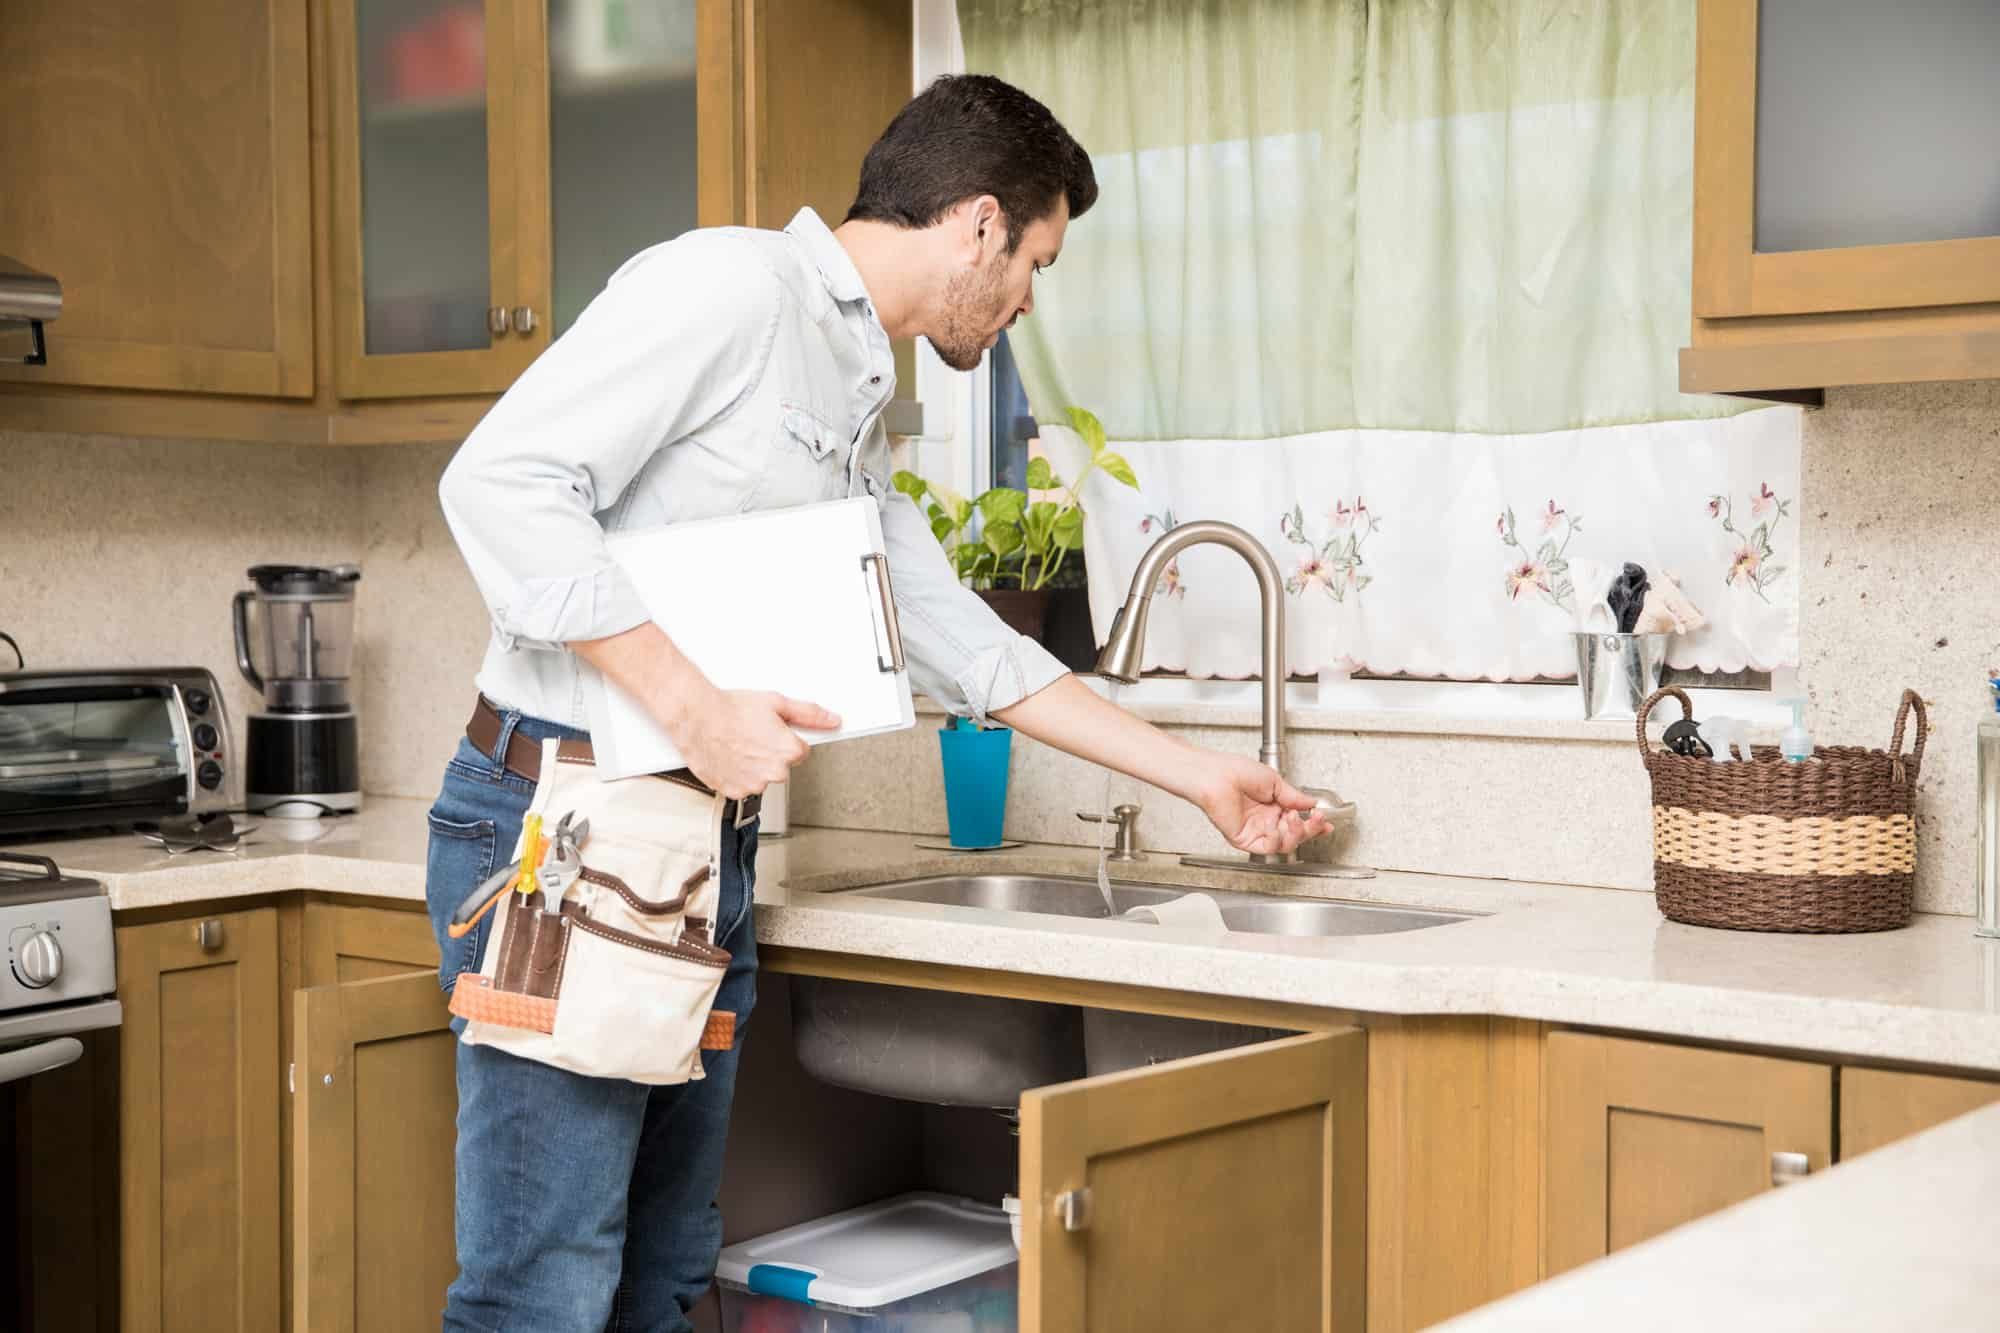 How To Tighten A Single Handle Kitchen Faucet